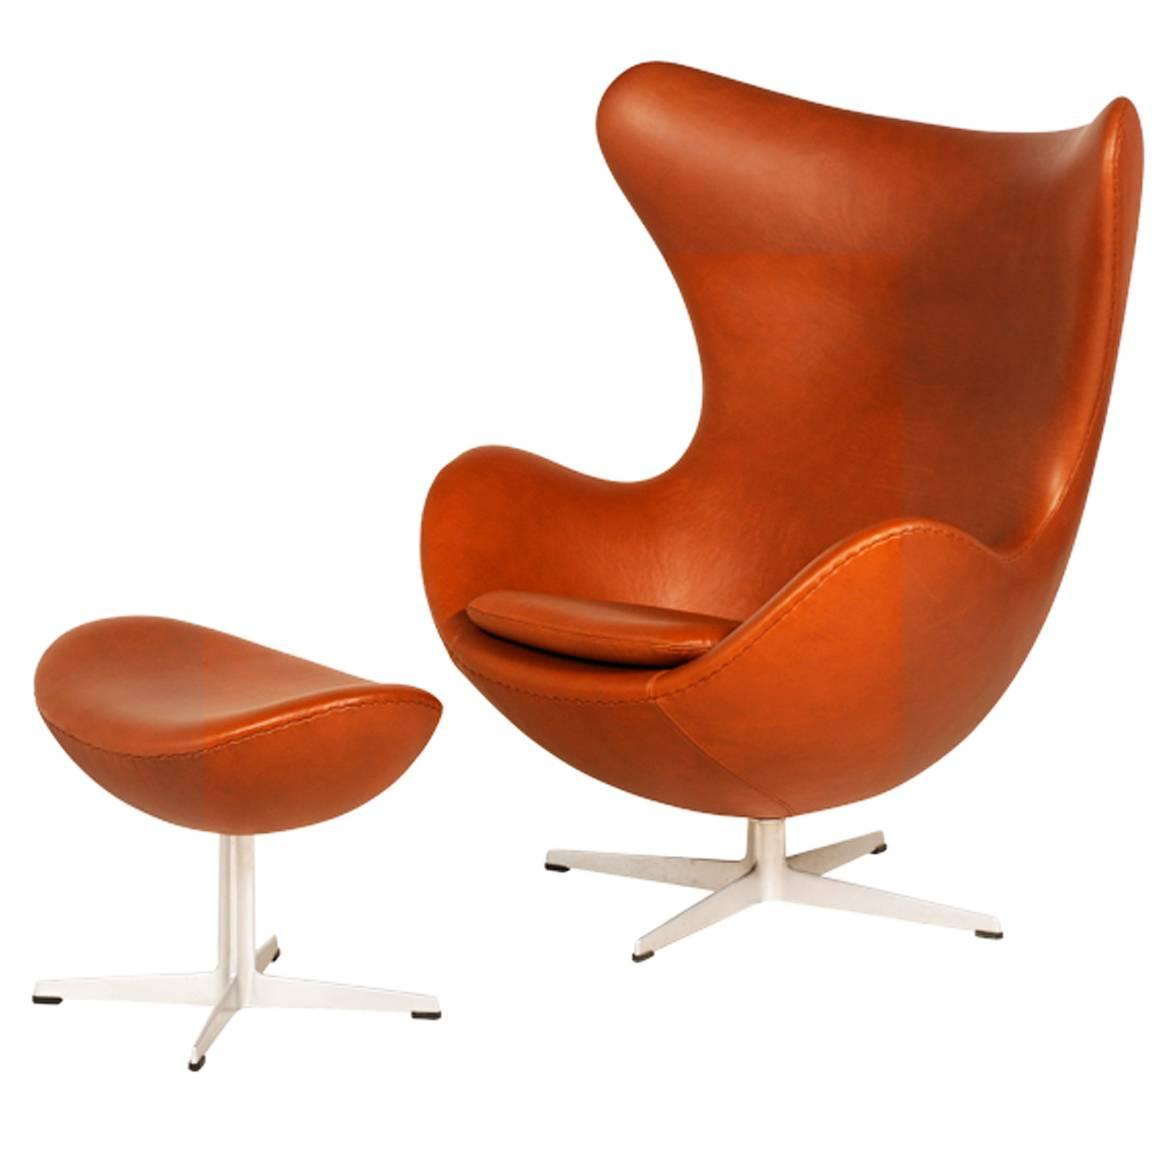 egg chairs for sale minnie mouse potty chair arne jacobsen with ottoman fritz hansen